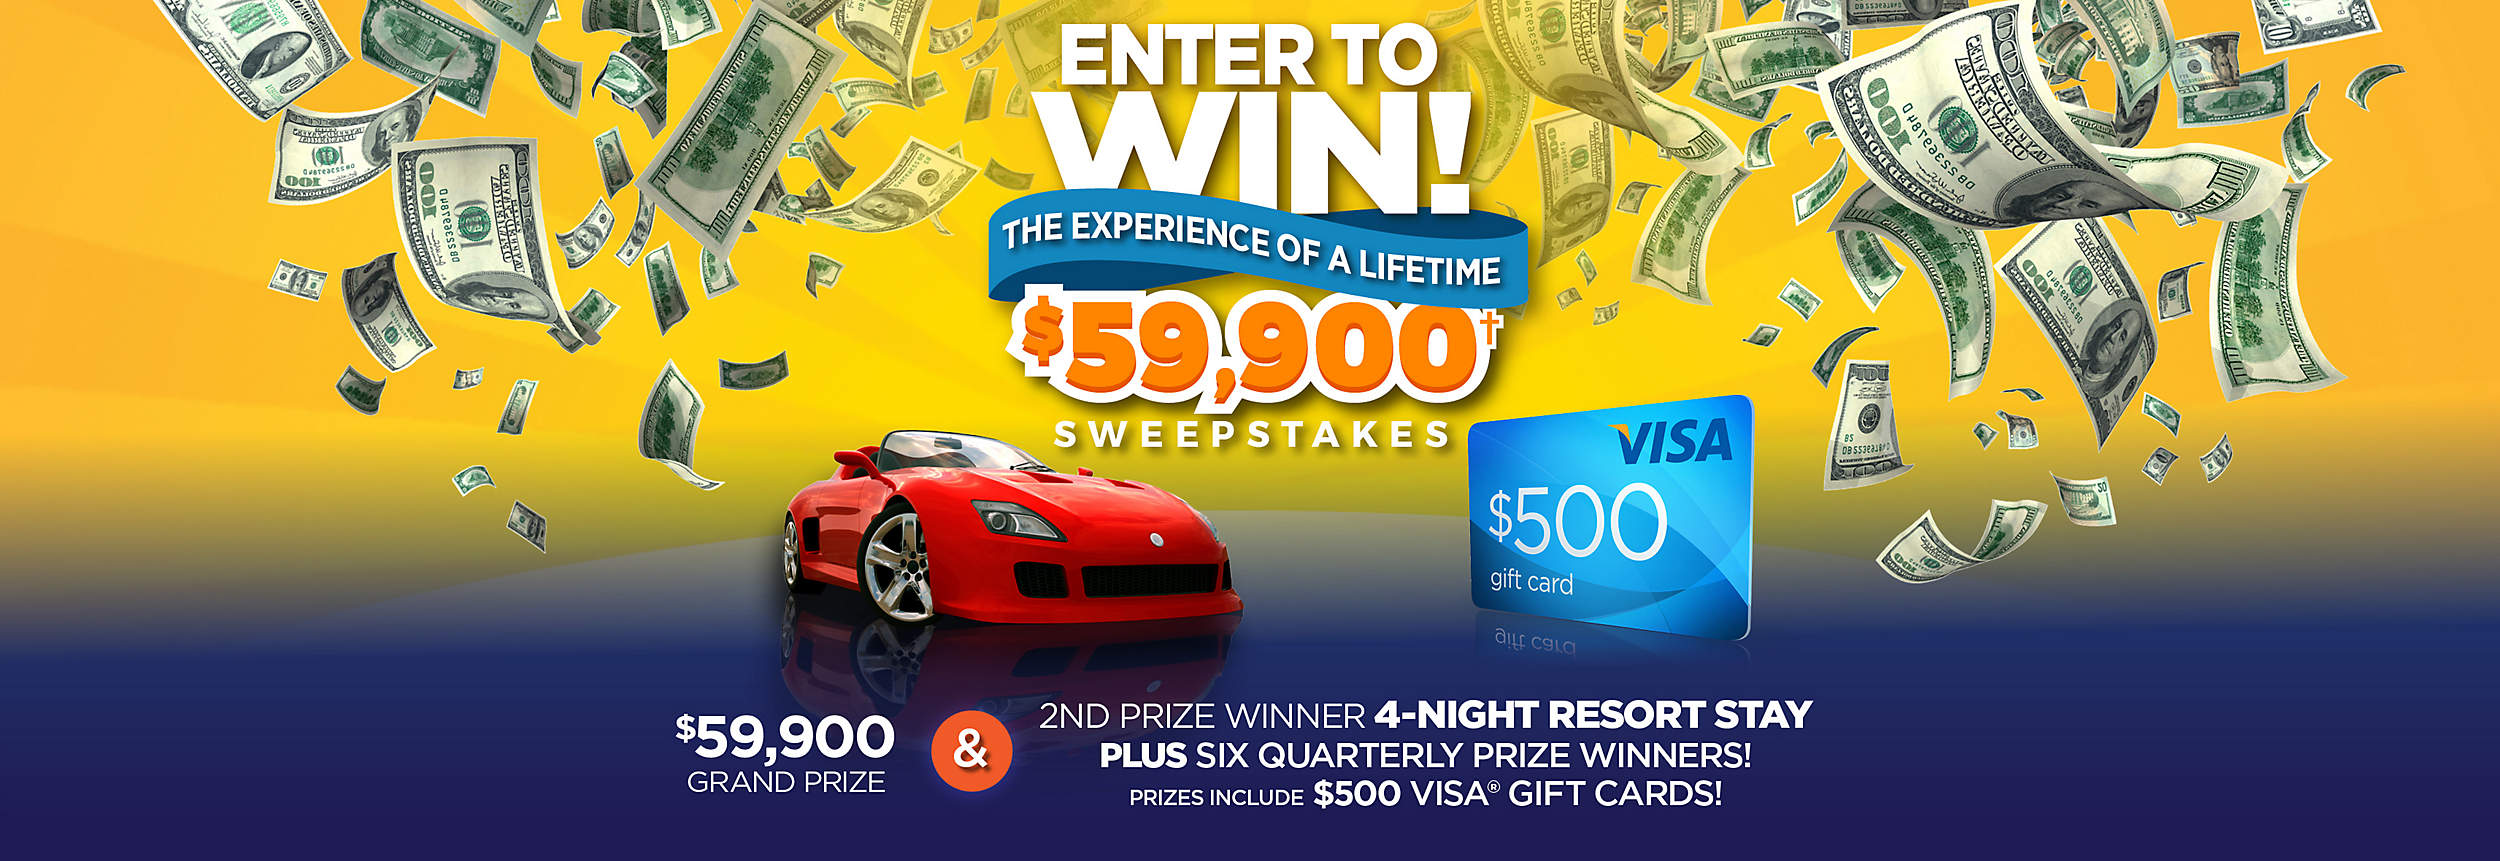 Enter to Win! The Experience of a Lifetime $59,900† Sweepstakes